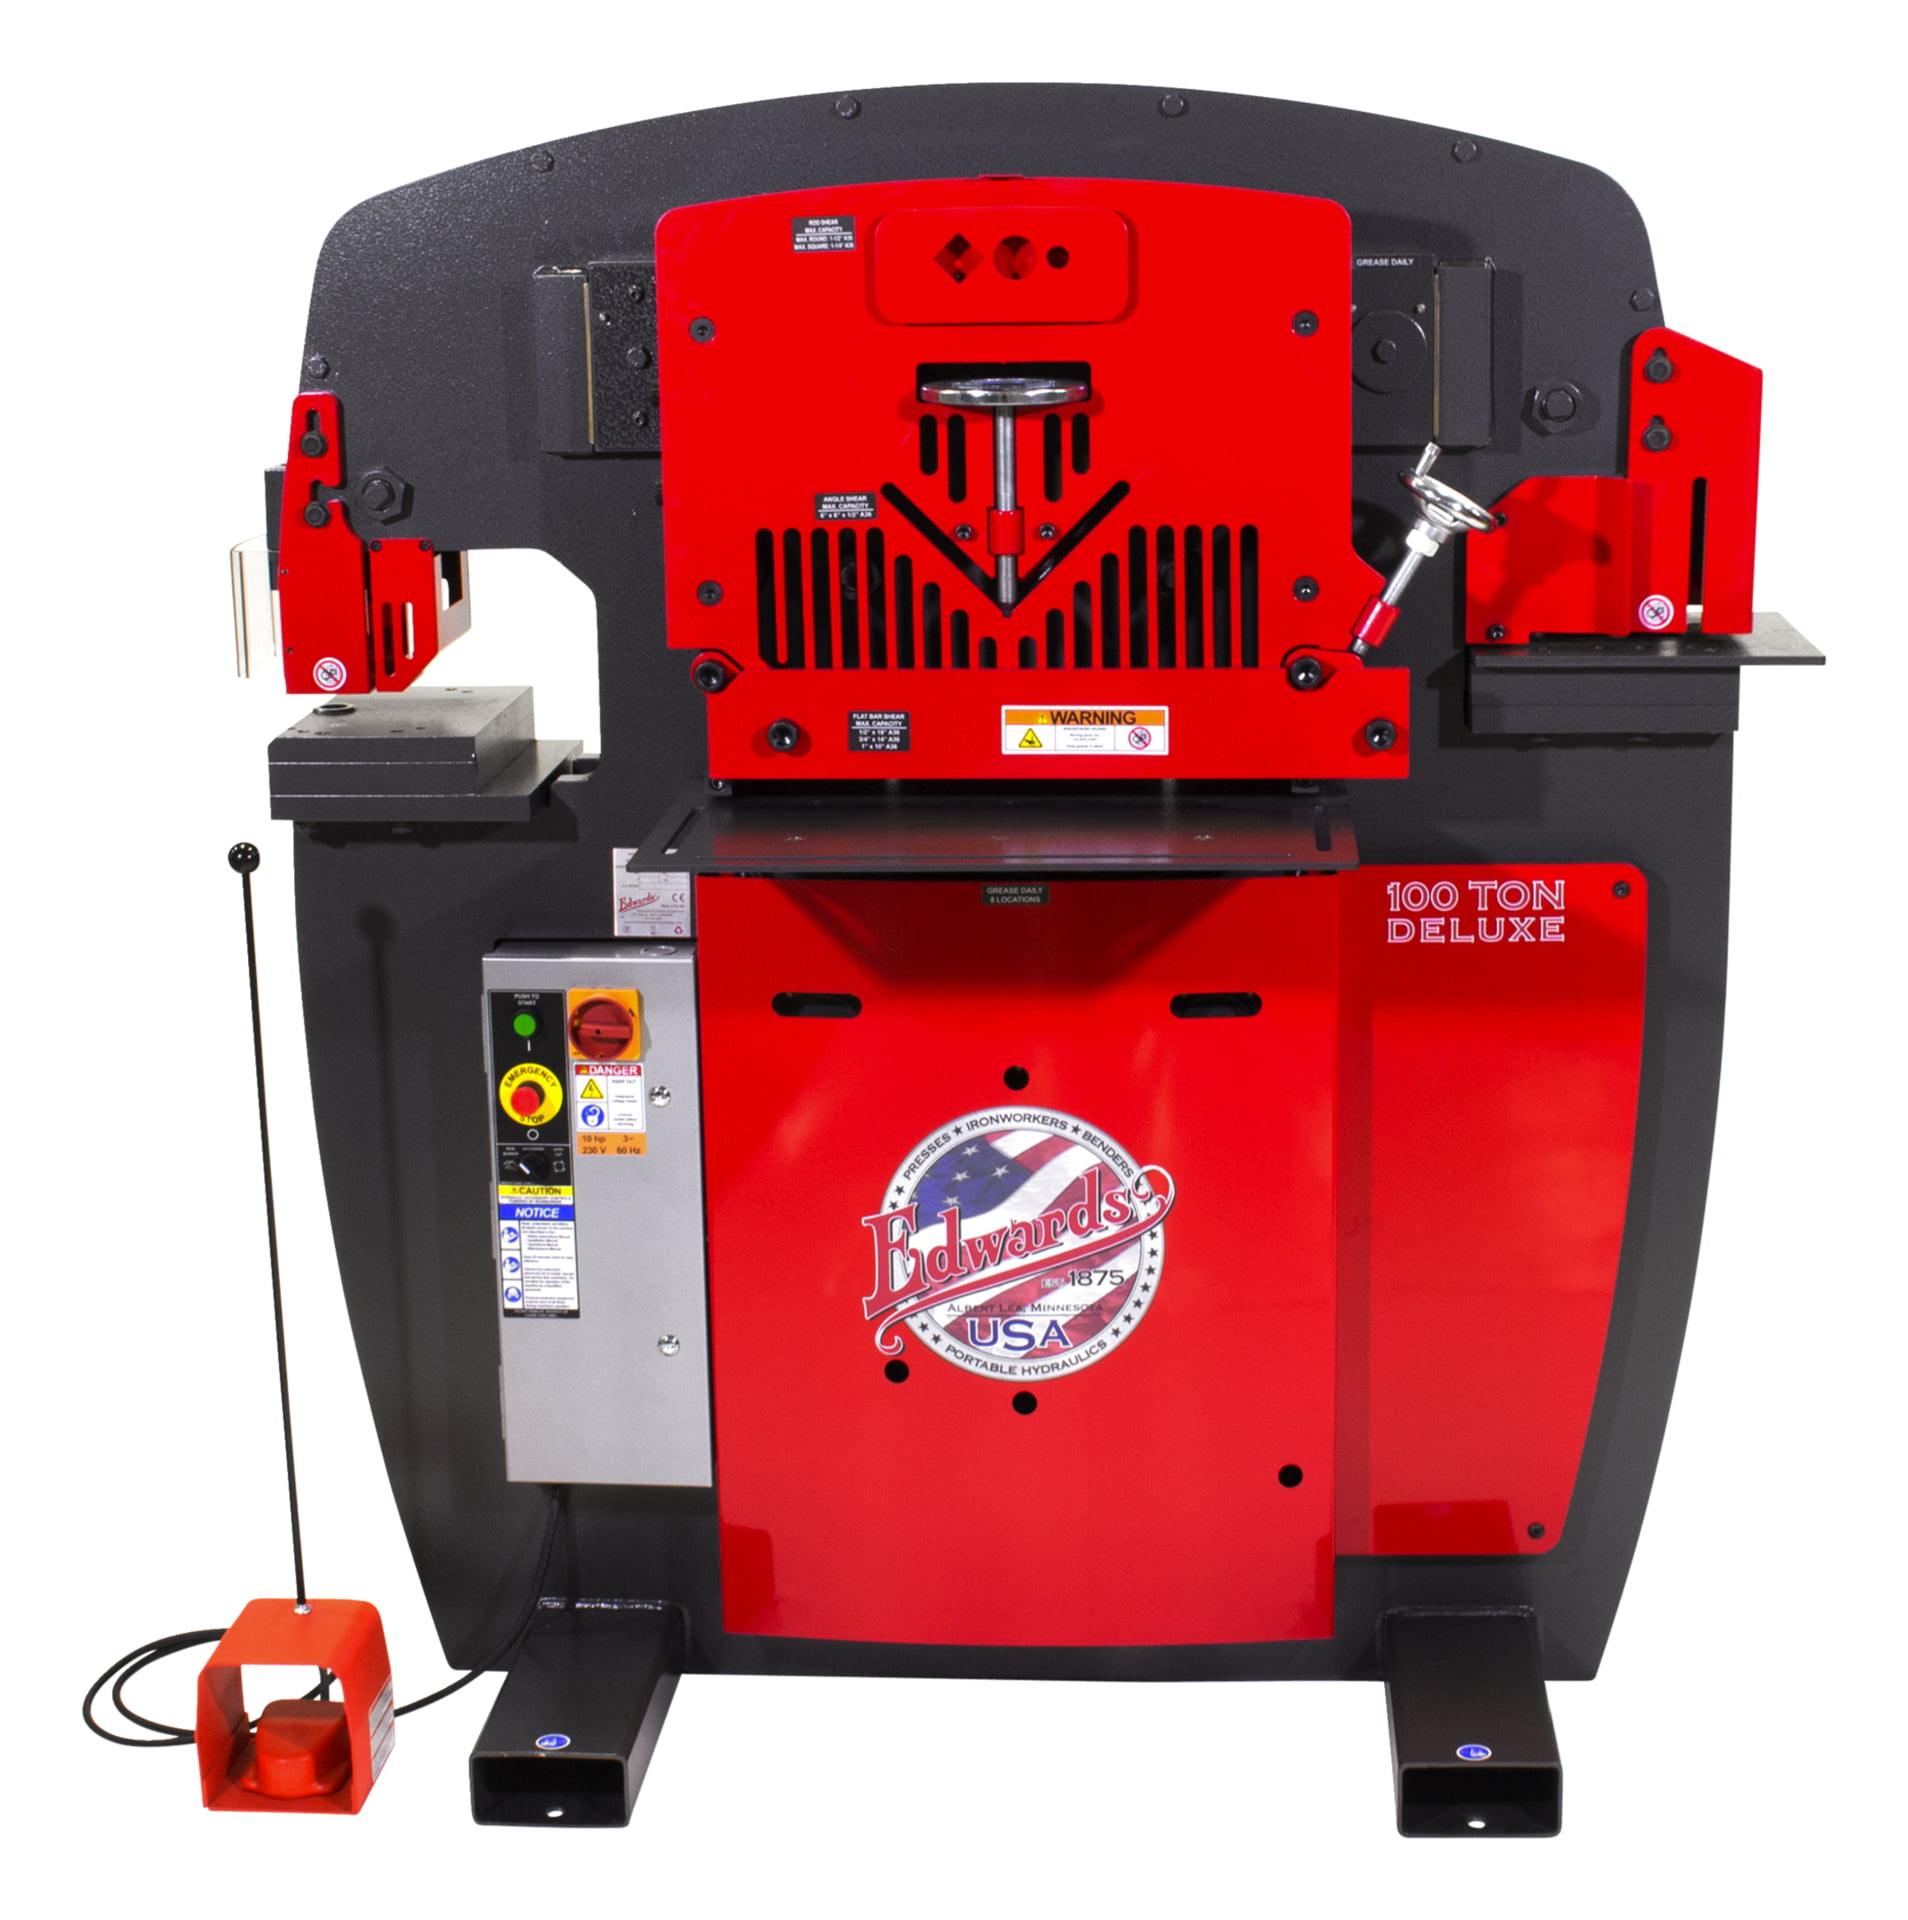 100 Ton Deluxe Ironworker 1 Phase  230 Volt With Powerlink